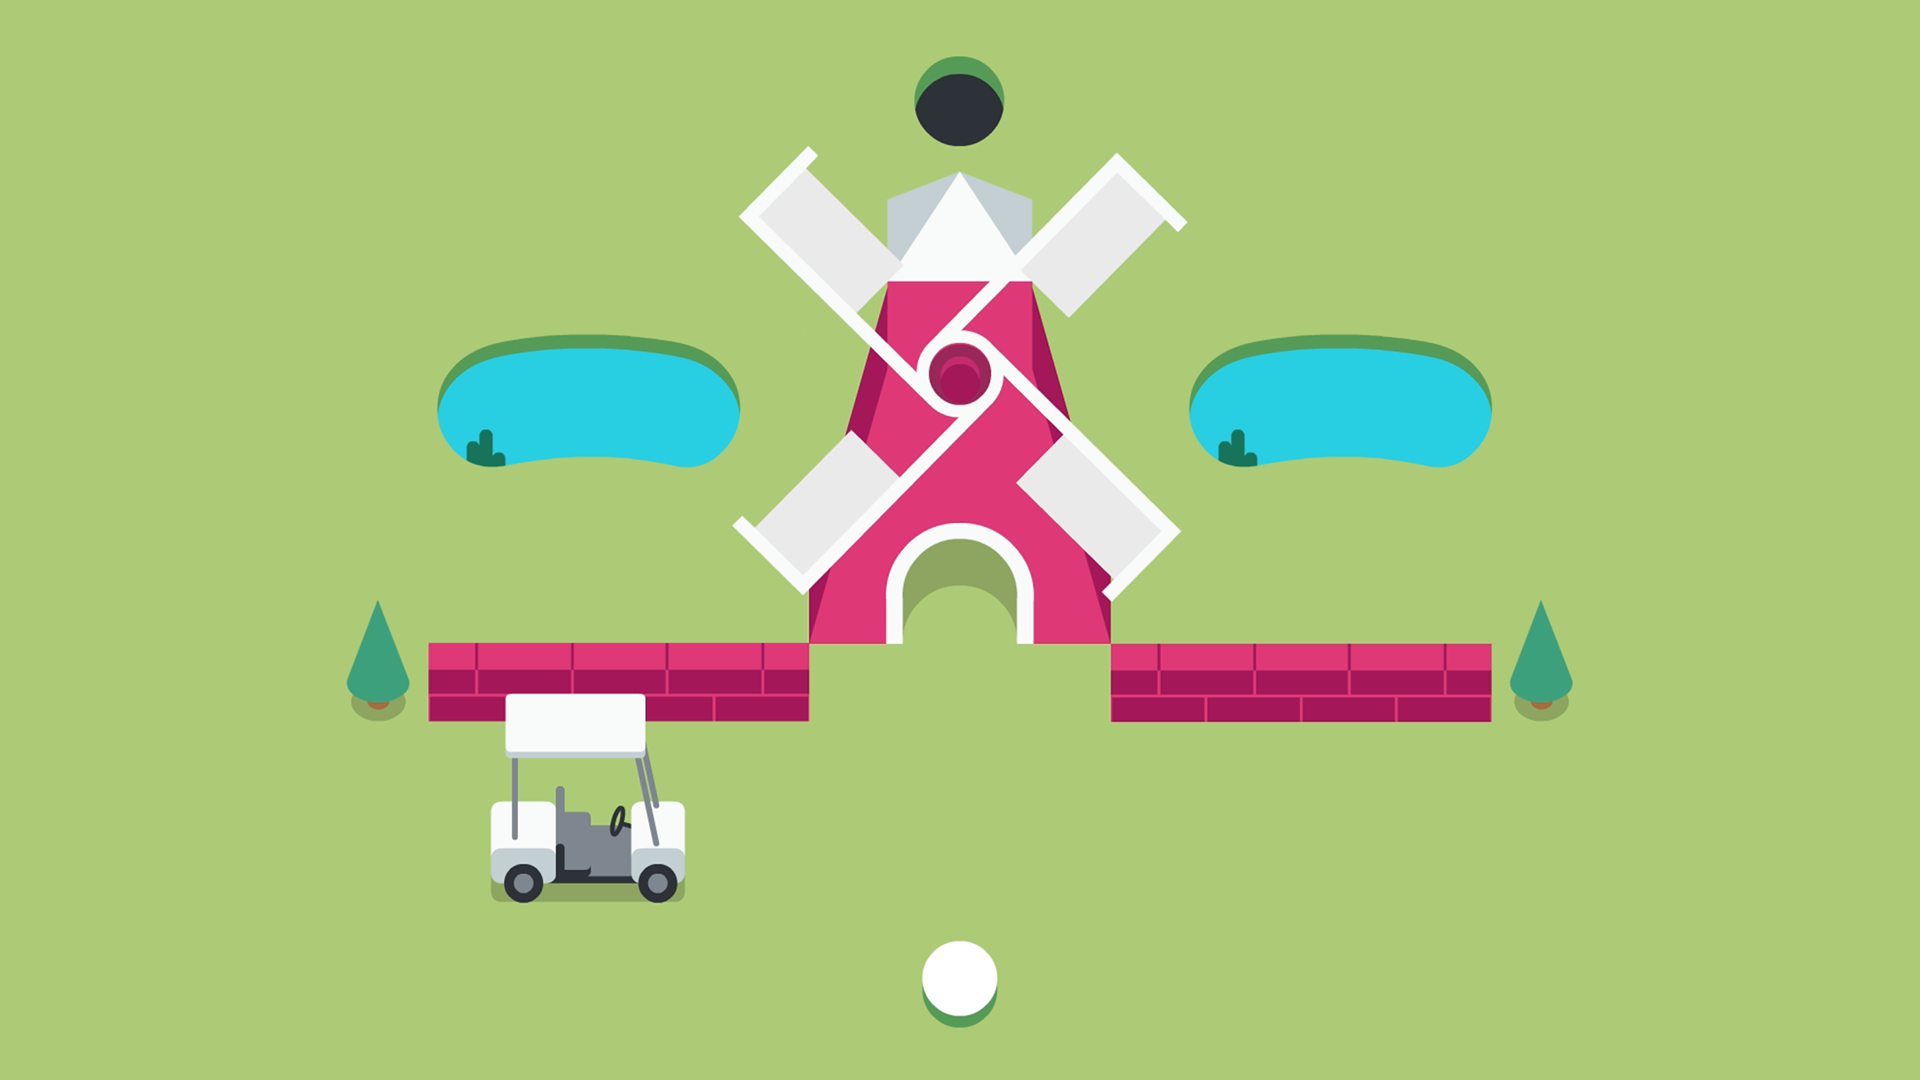 An illustration of a crazy golf game using a windmill